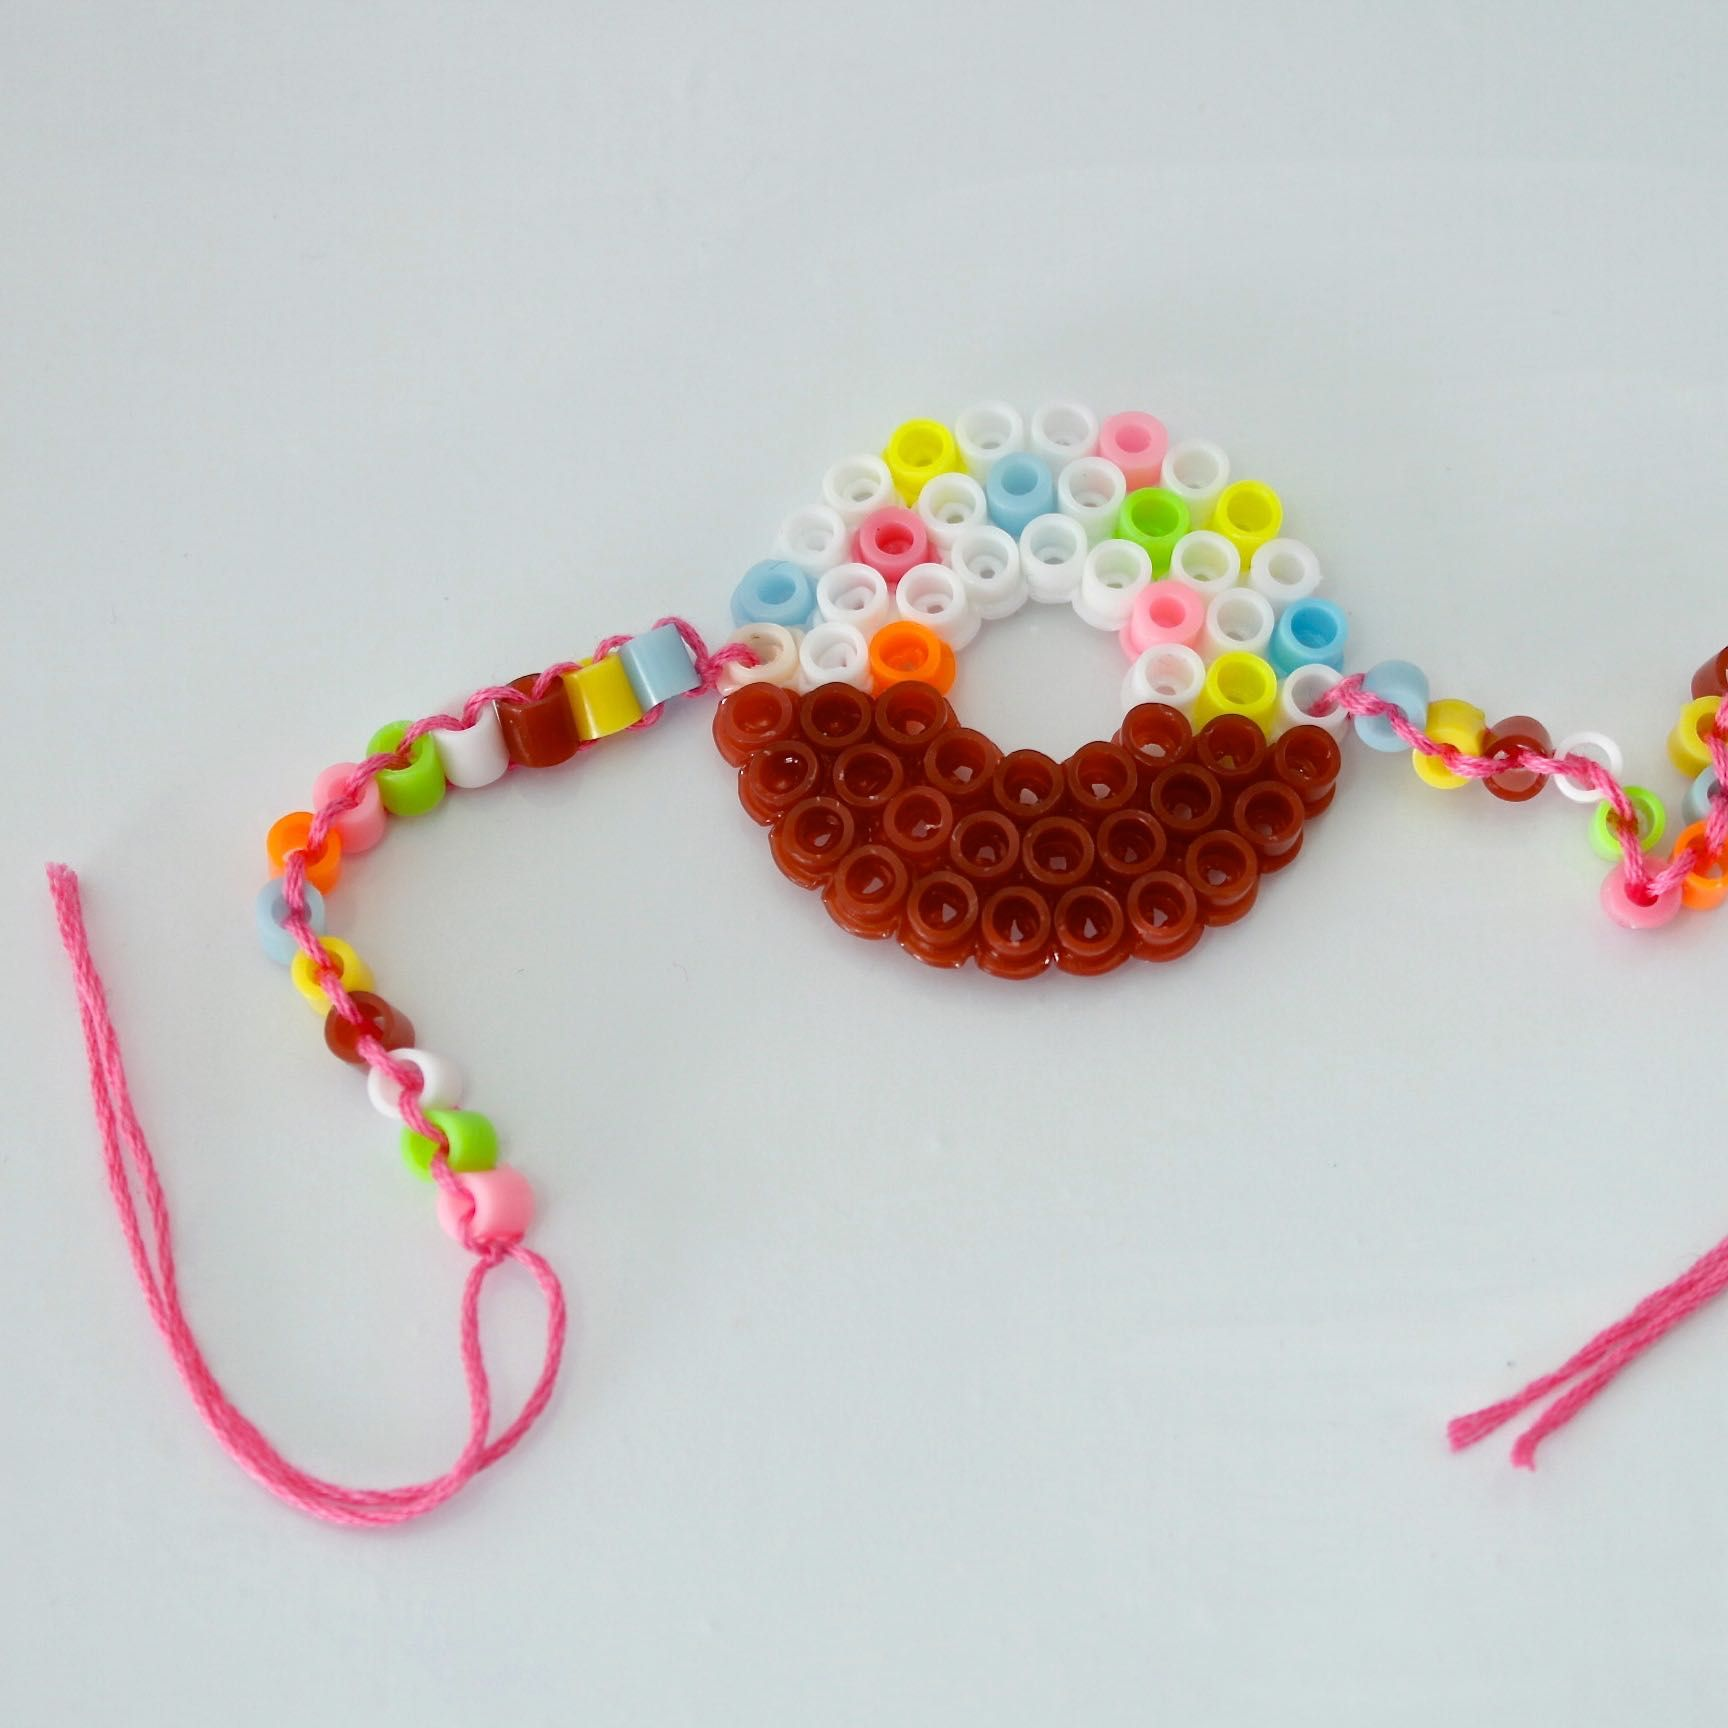 how to scoubidou name make bead bavj or and bracelet bracelets string diy with beads hama perler o